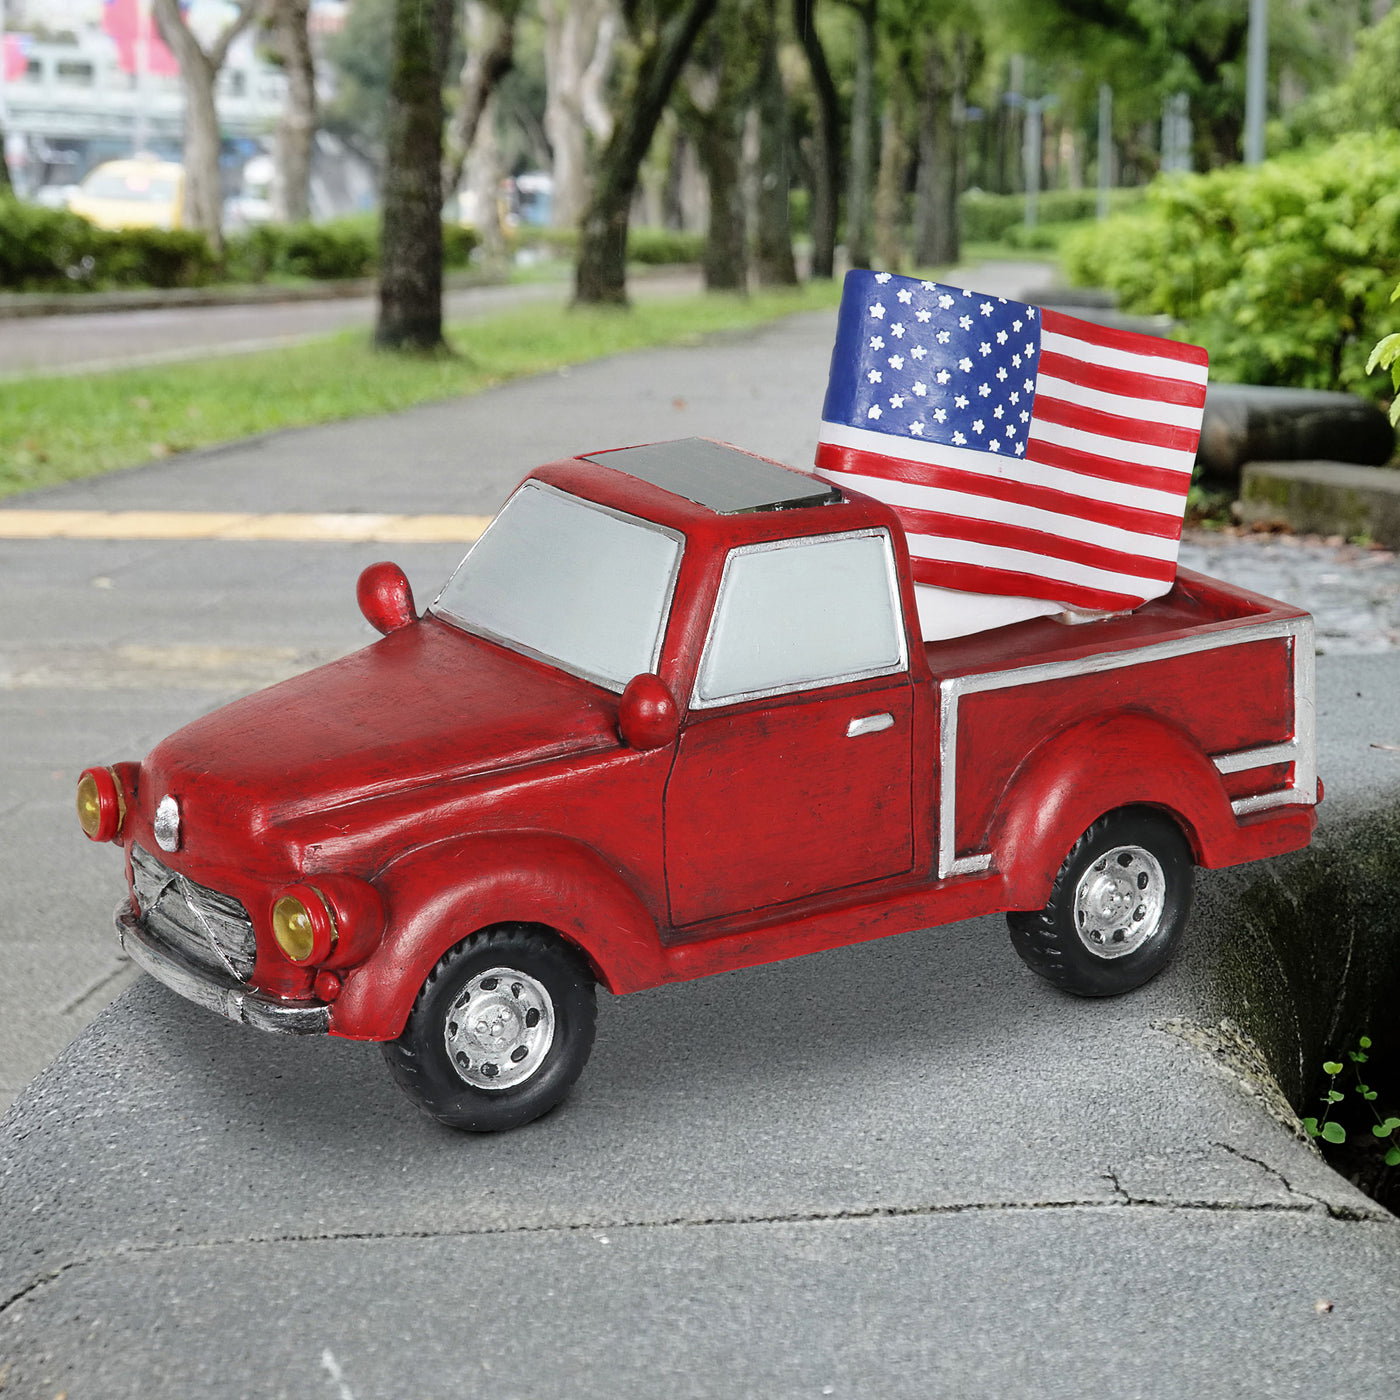 Solar Red Patriotic Garden Truck Statue With American Flag 6 5 By 11 Inch Exhart Home Garden Decor